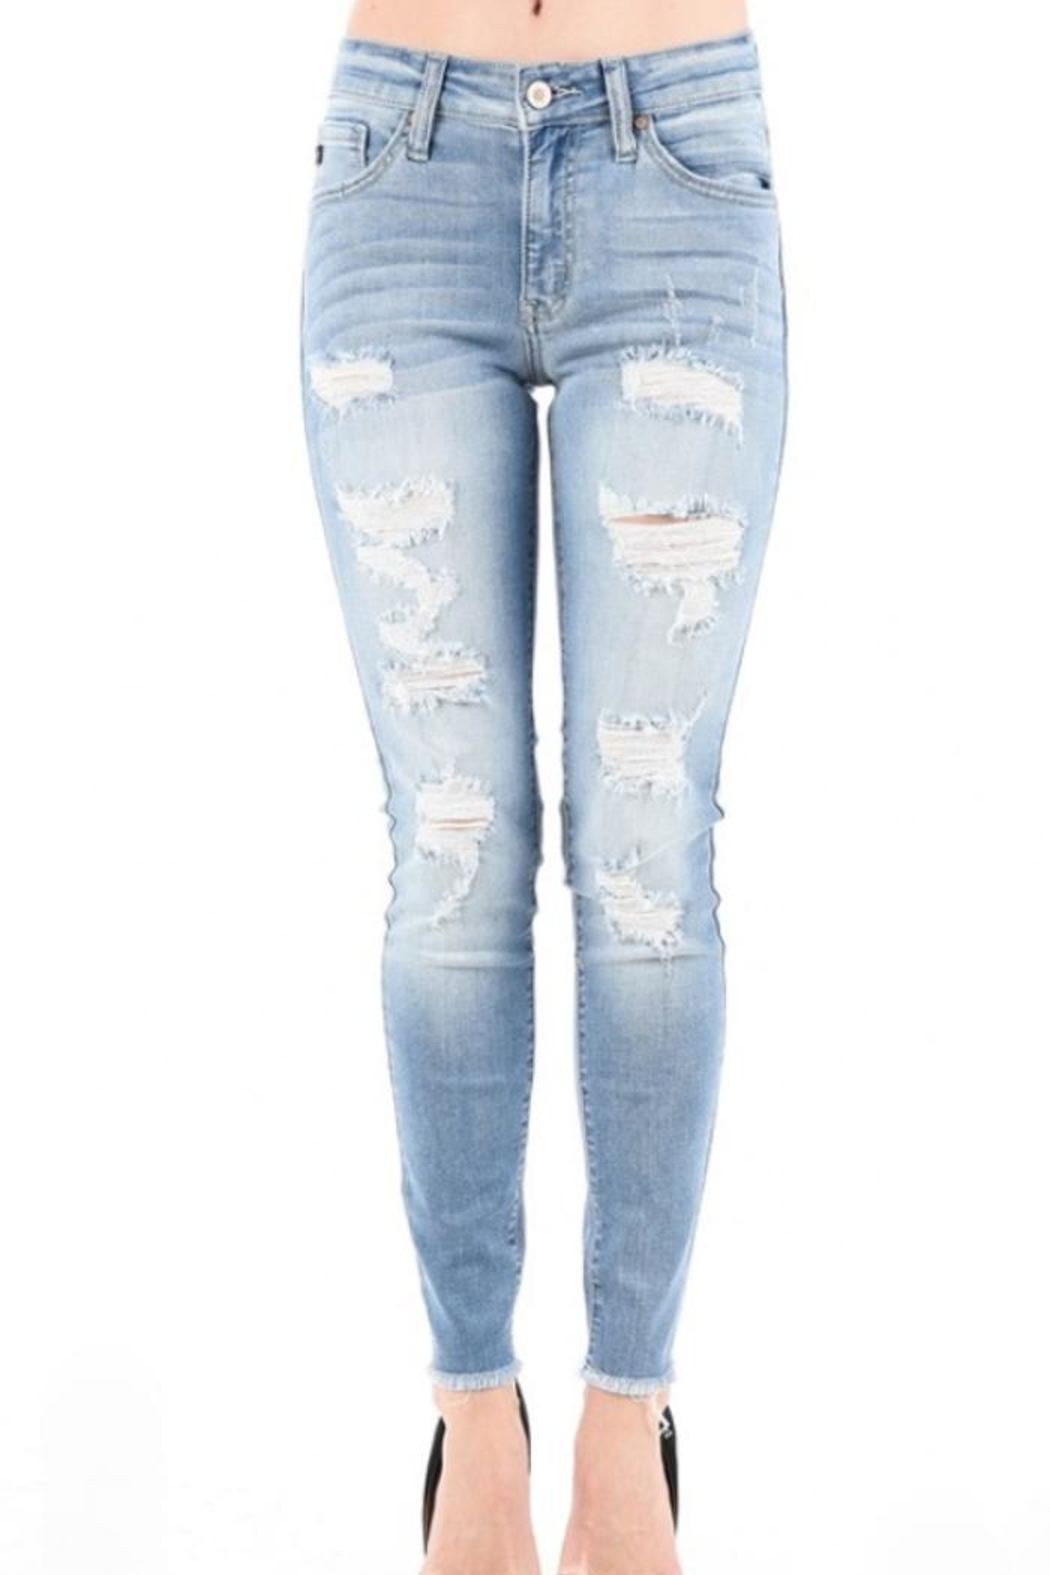 34391db13bdc2 KanCan Light Ripped Jeans from New York by Jamie and Maxi — Shoptiques